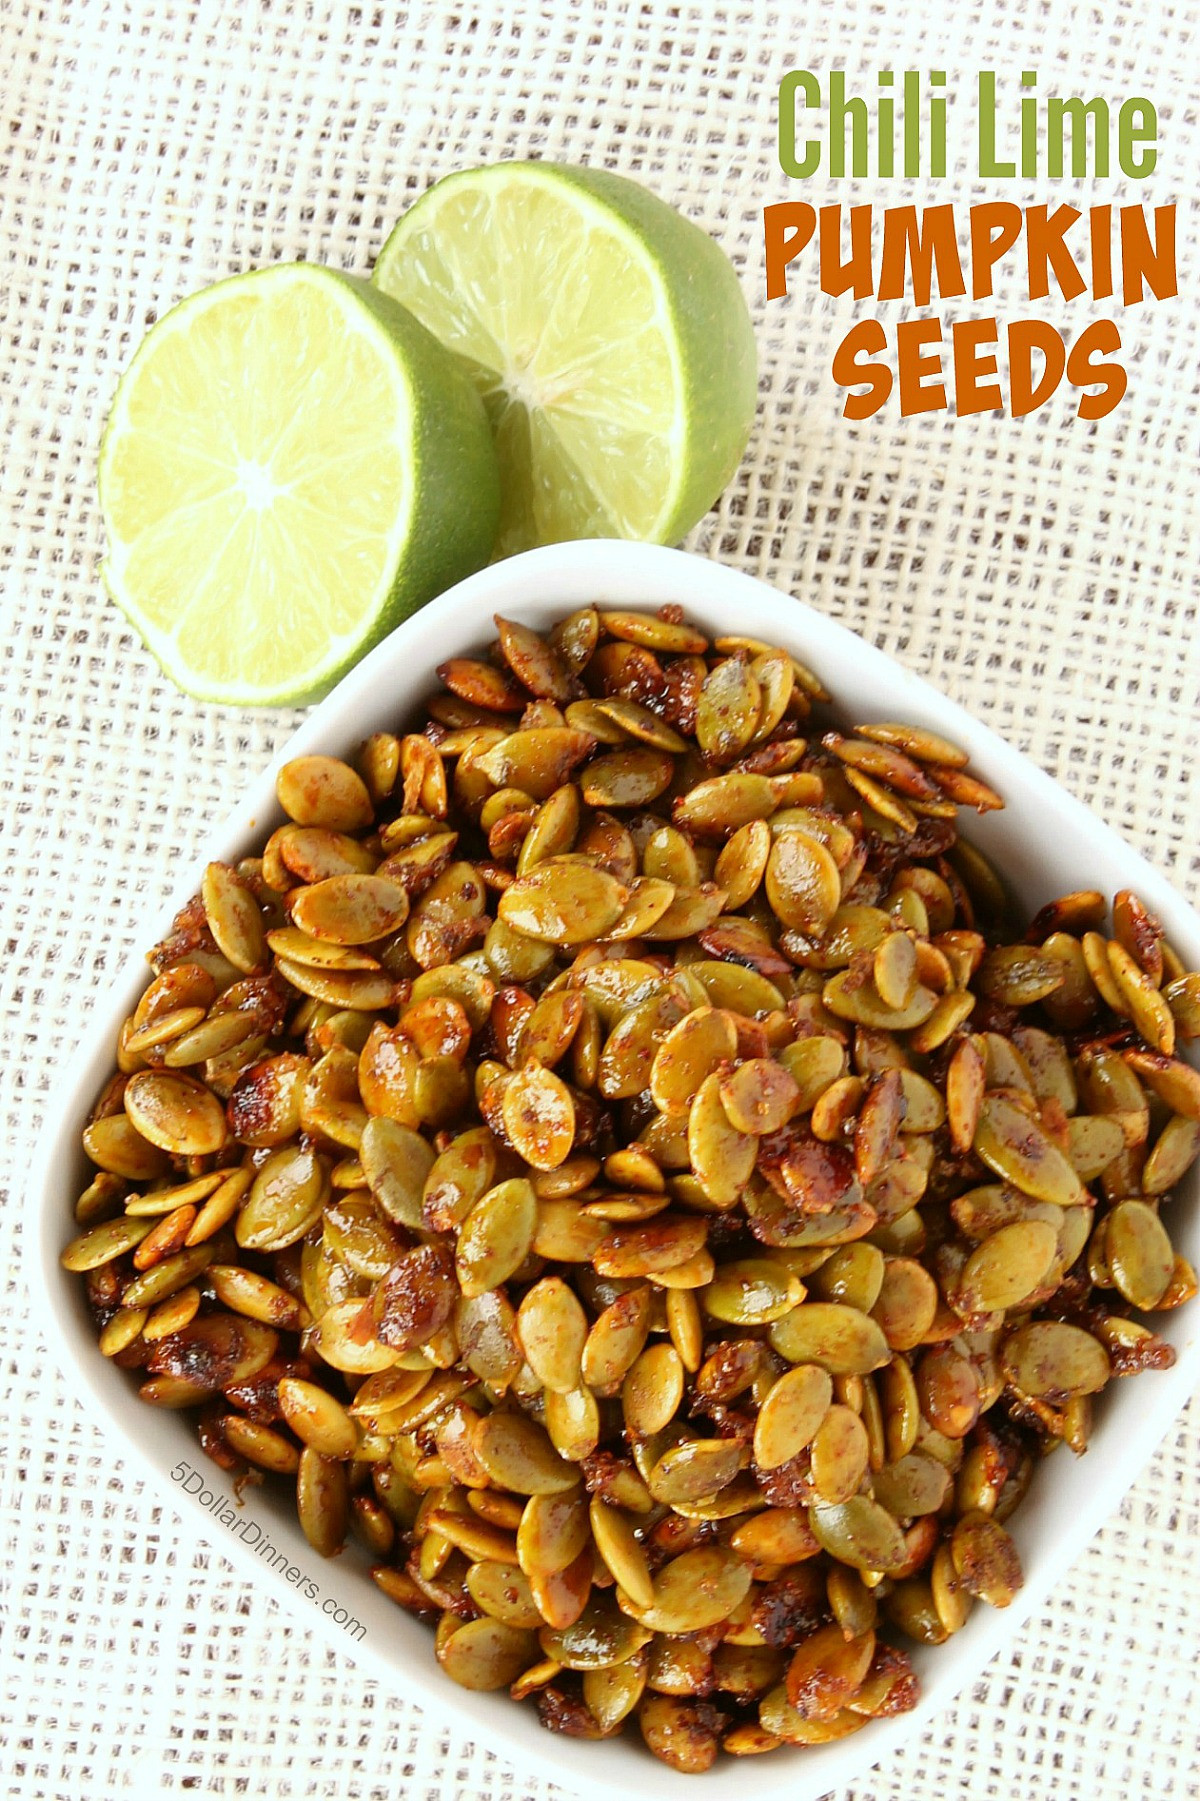 Healthy Pumpkin Seed Recipes  Chili Lime Pumpkin Seeds 31 Days of Healthy Snack Recipes